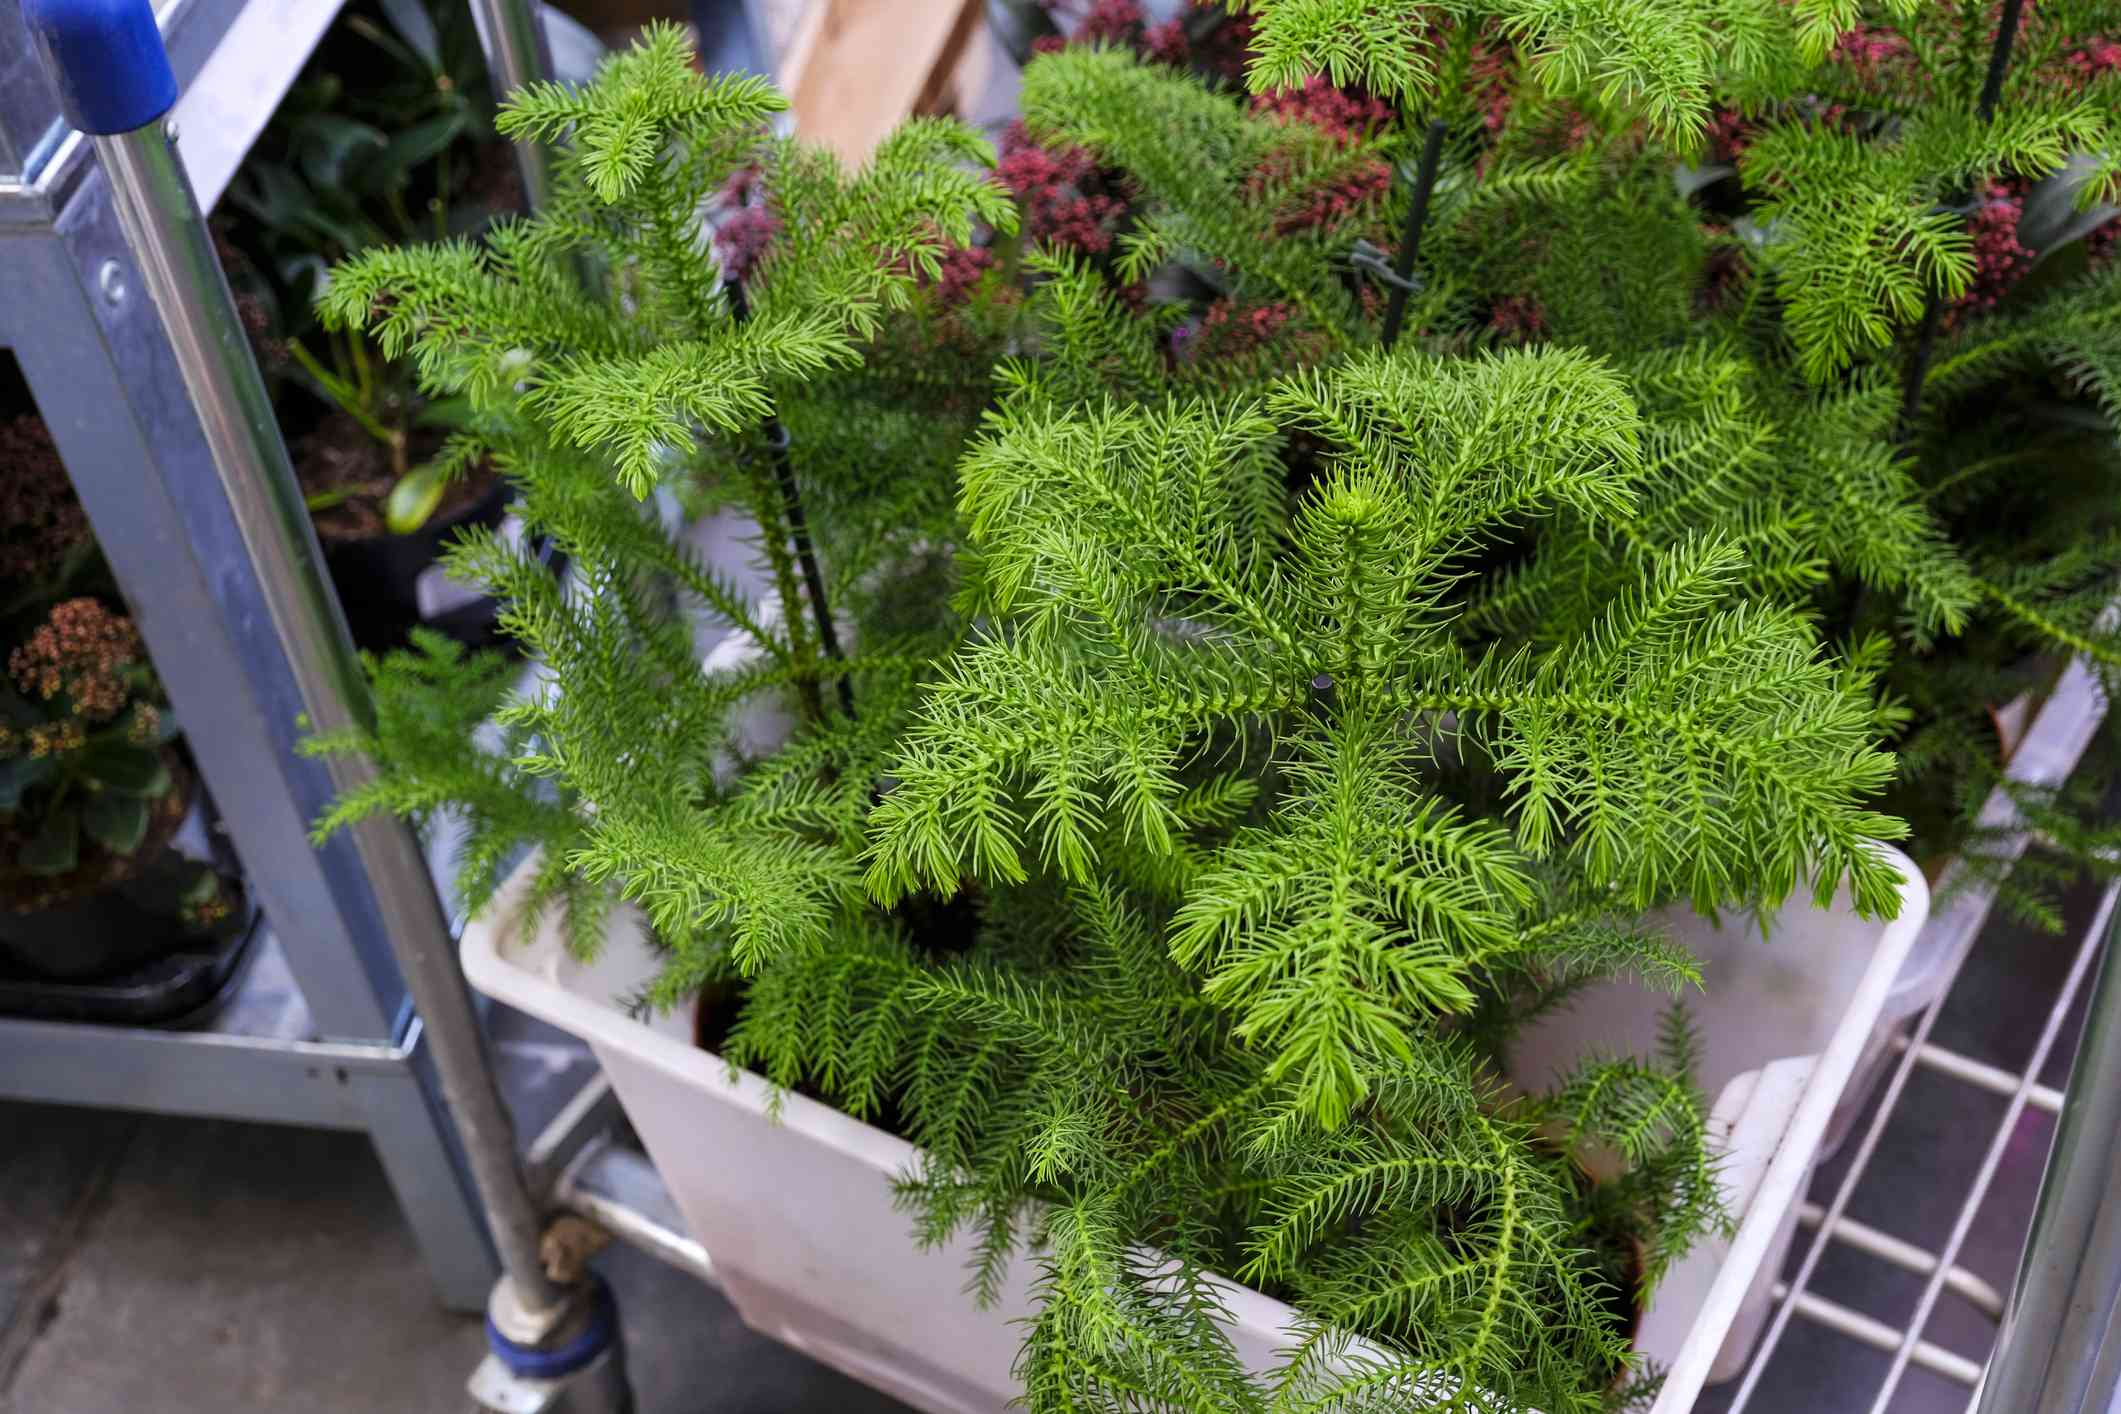 Small Forfolk Island Pines in a container at a store.